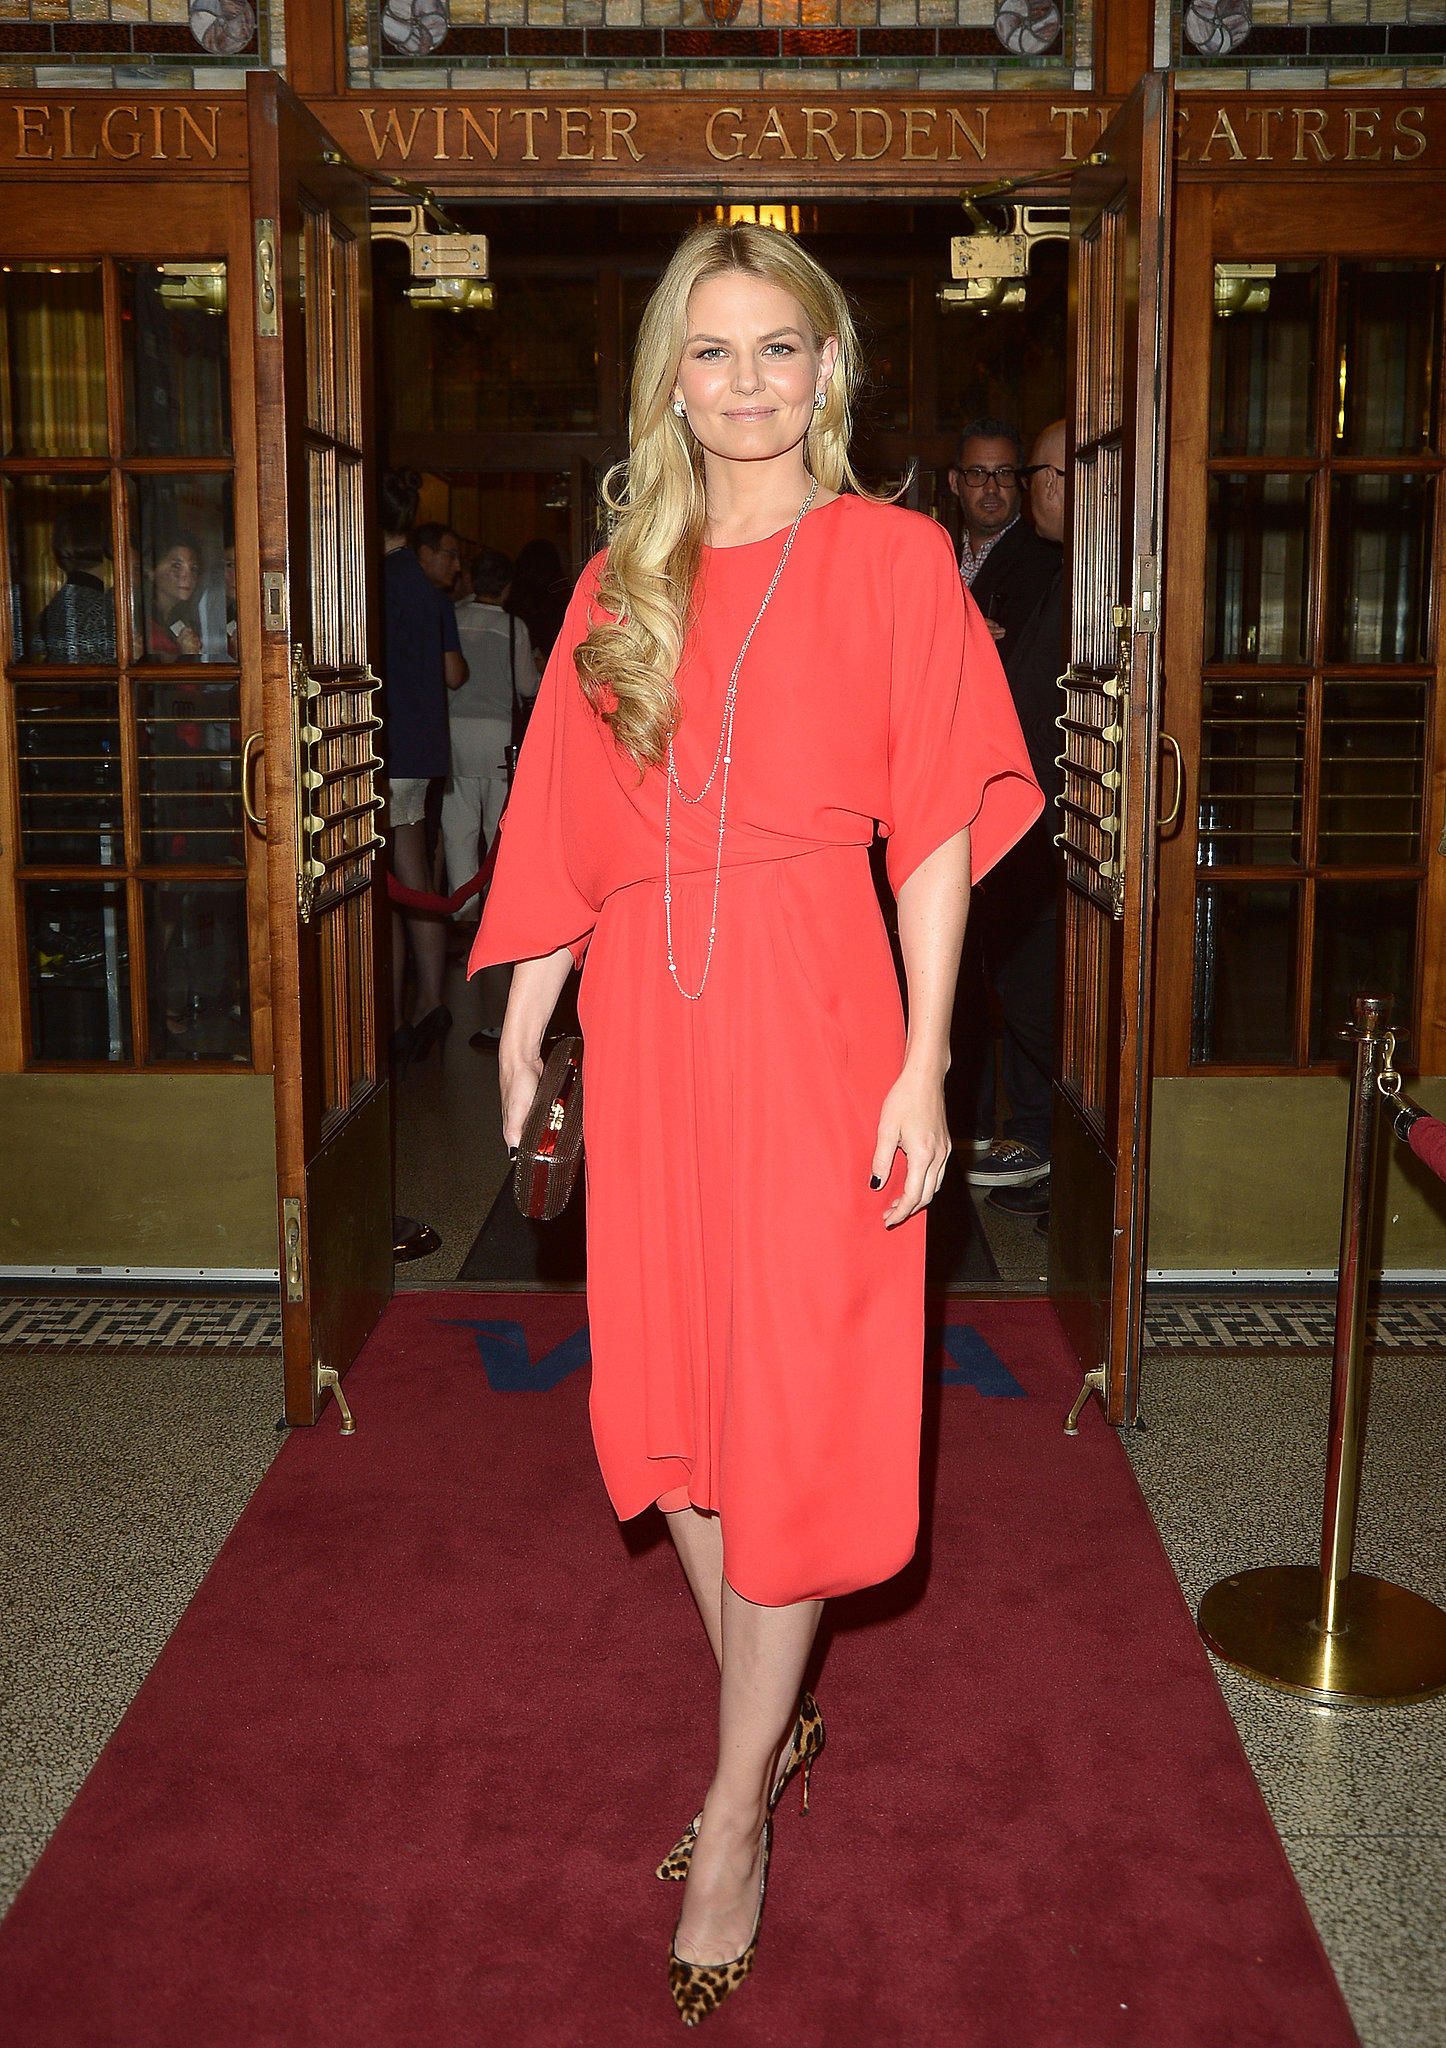 Jennifer Morrison arrived at the Felony premiere.